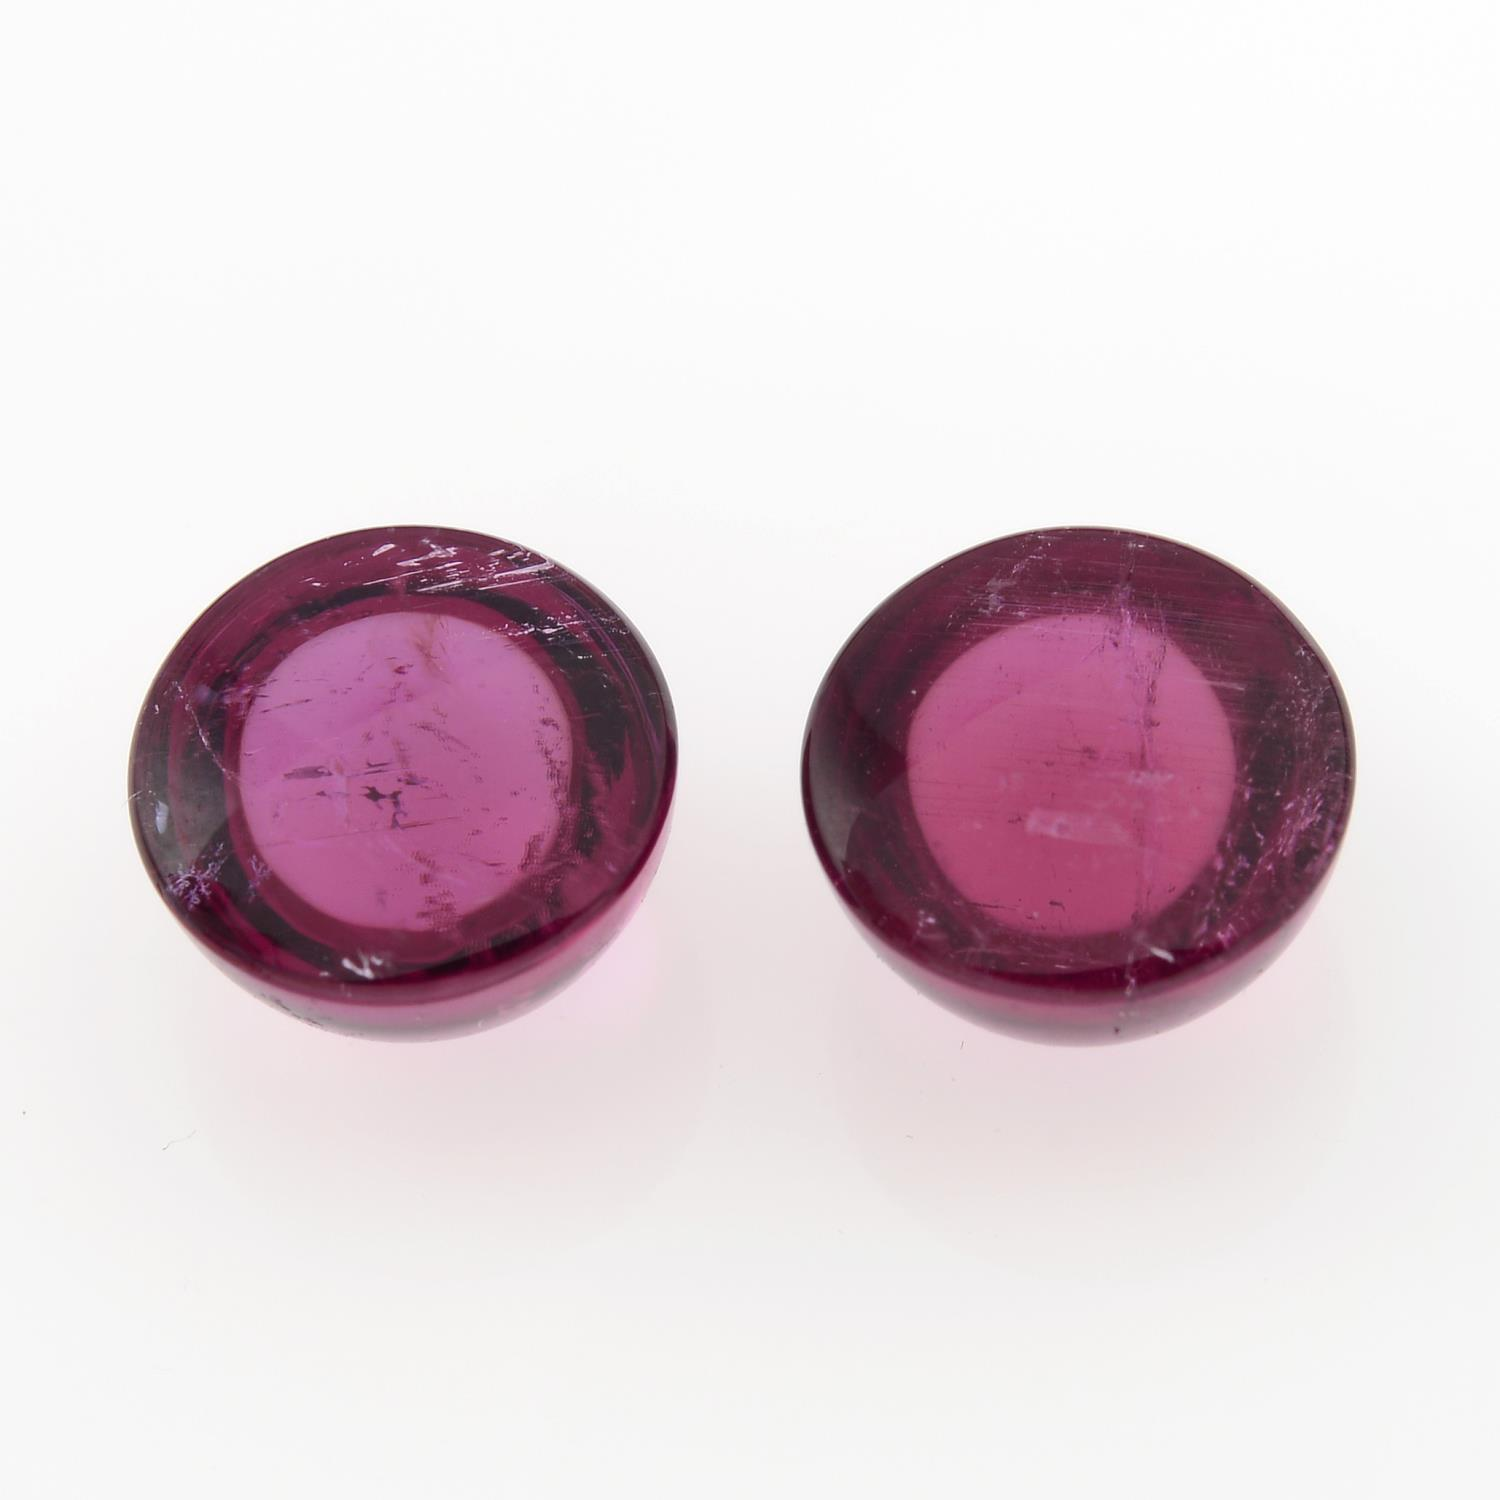 Pair of rubellite cabochons, weighing 3.66ct. - Image 2 of 3